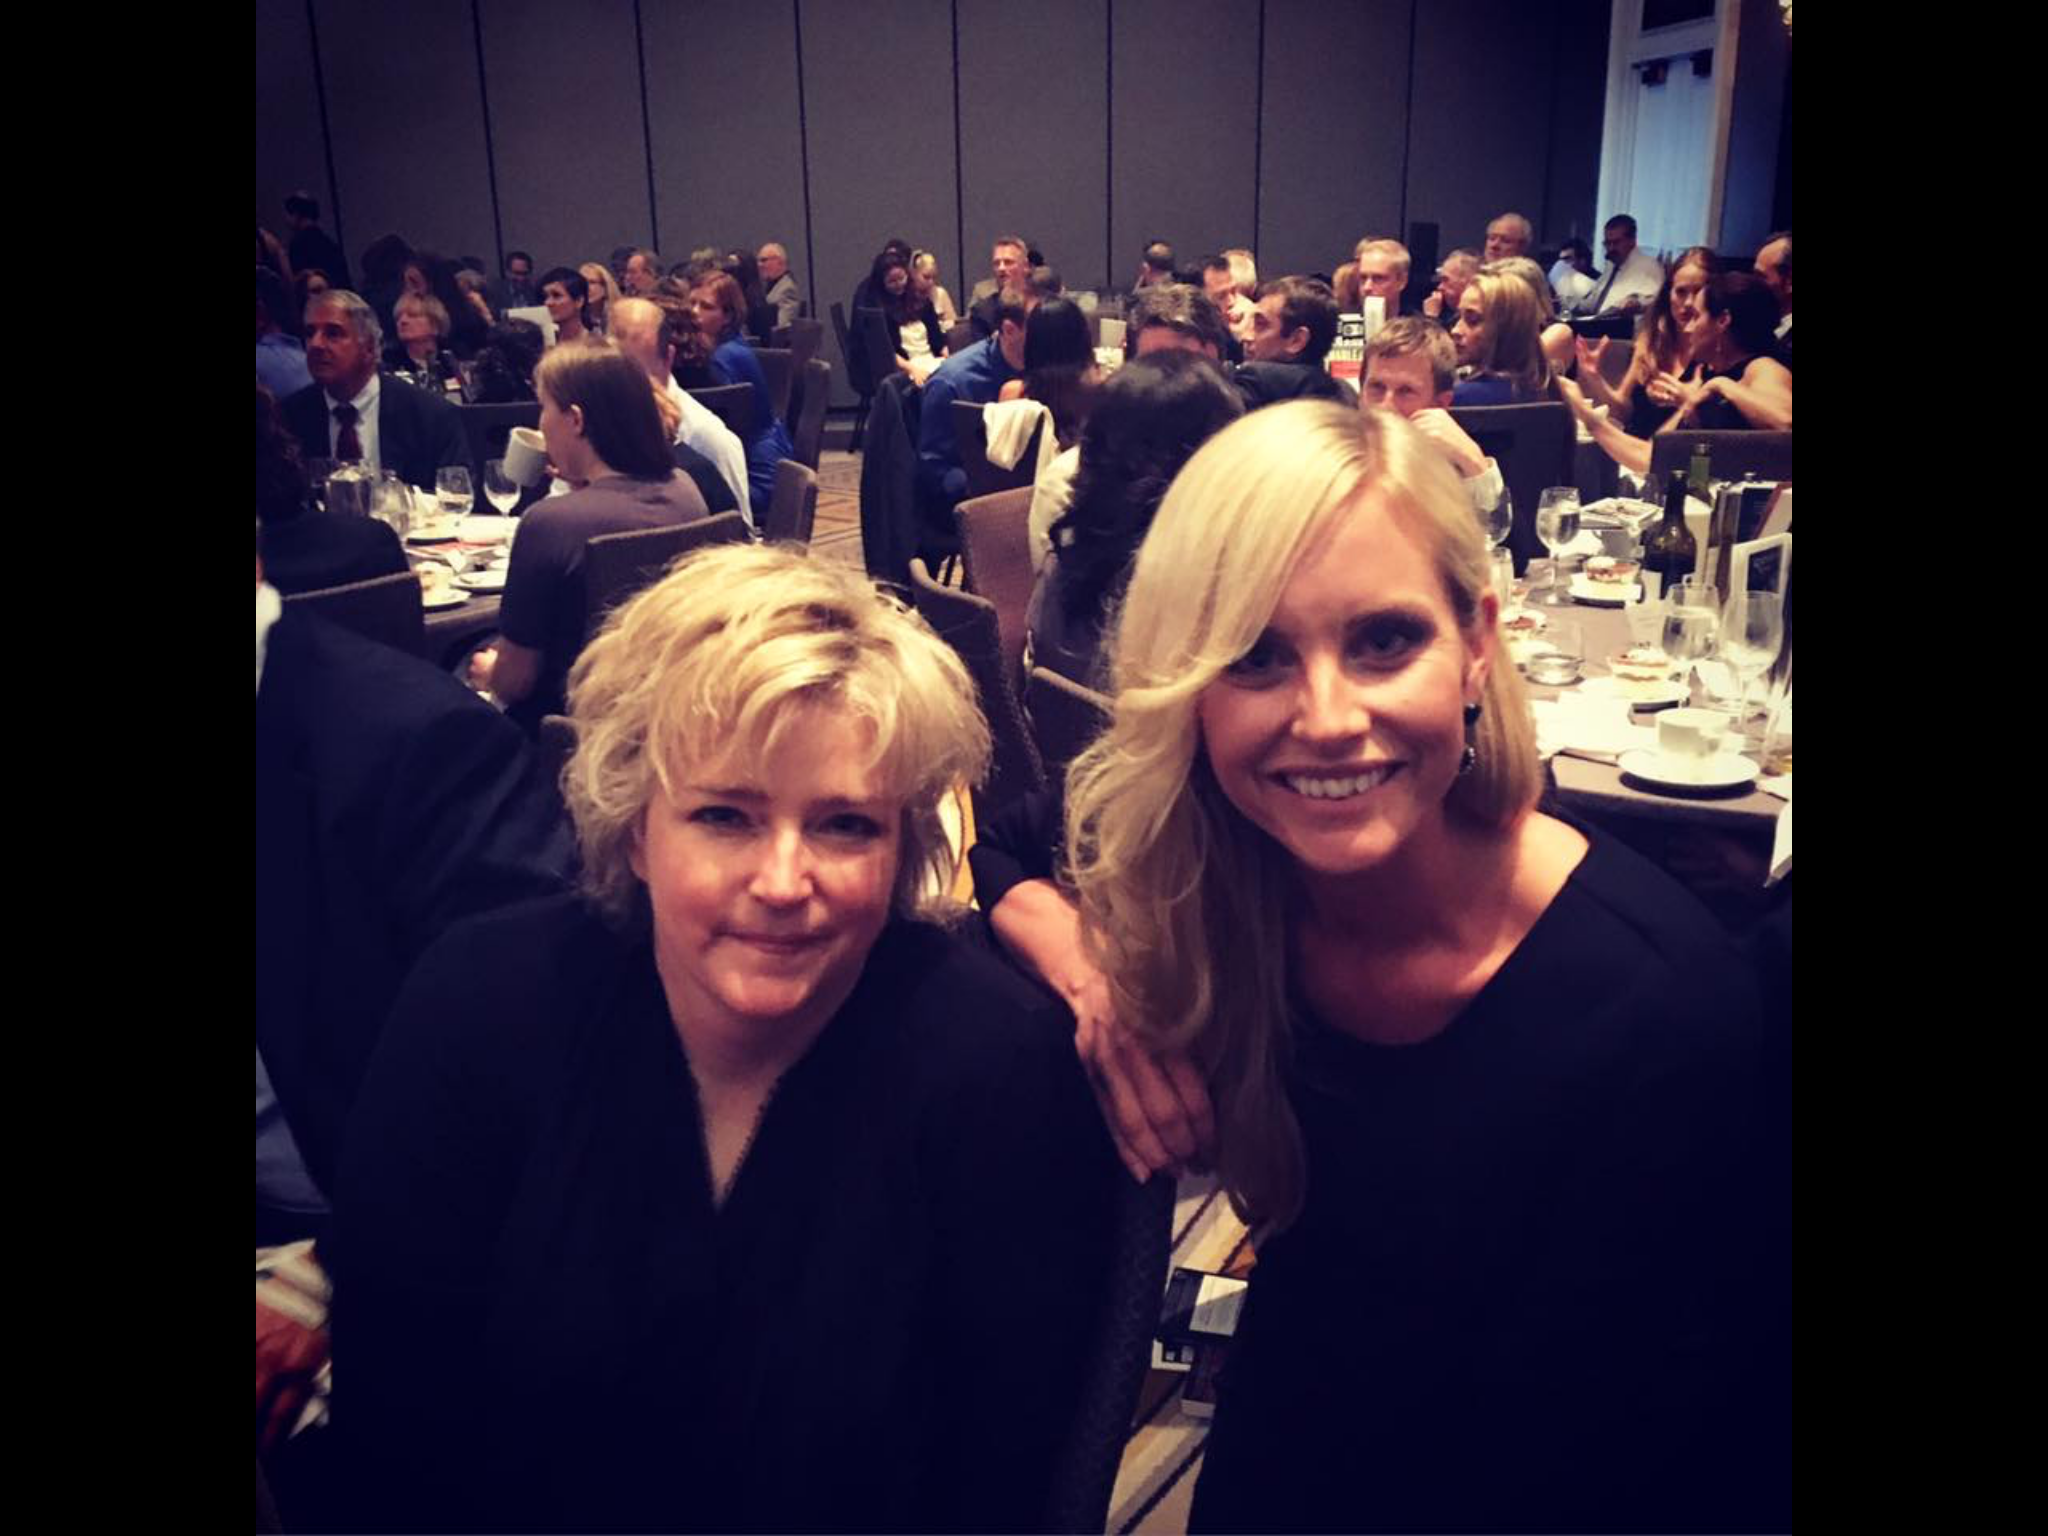 Emelie and Karin Slaughter